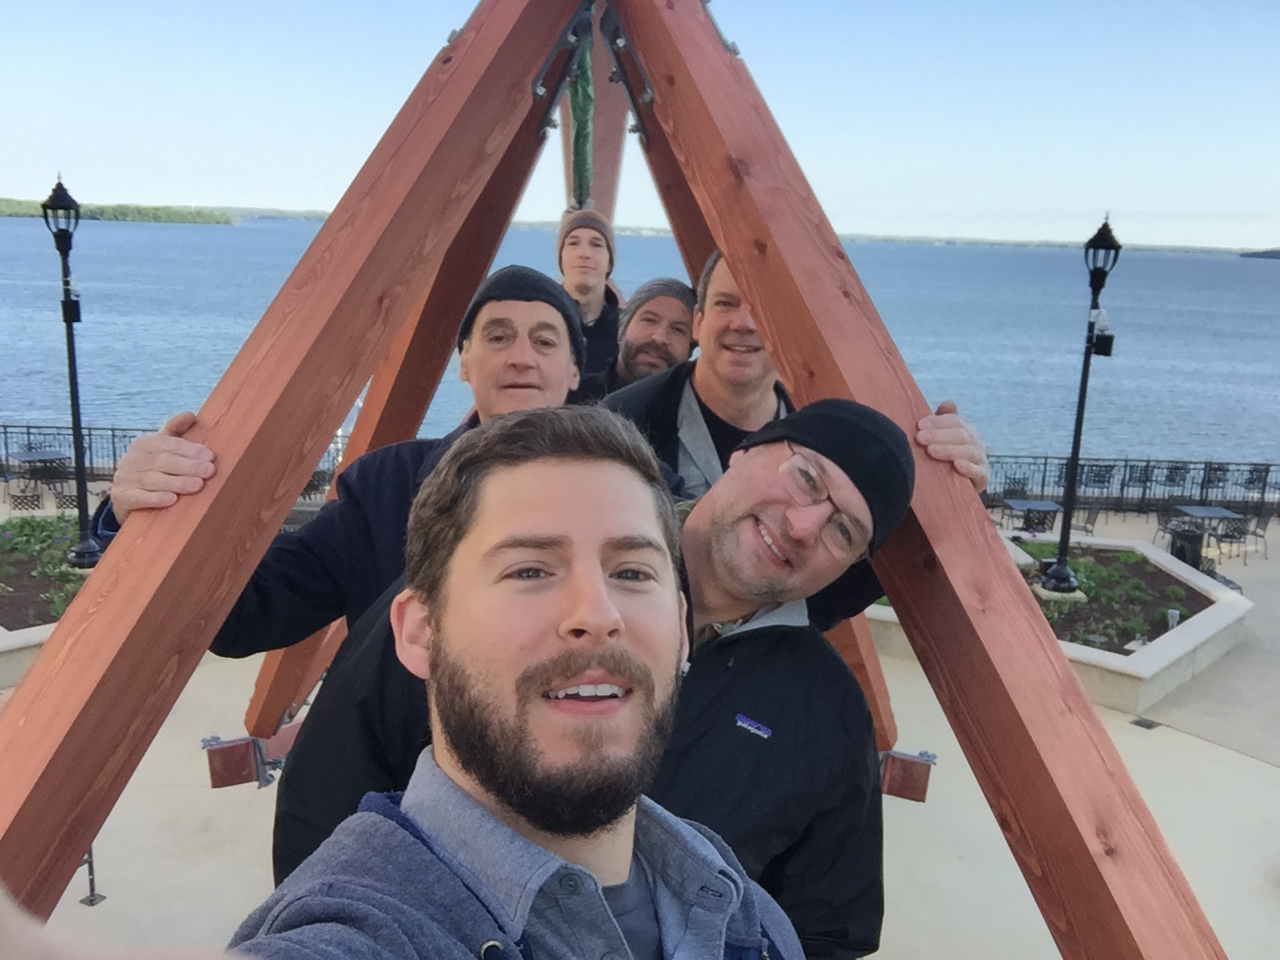 My co-workers along with Richard posed on the finished bridge. Front to back: Sean, me, Richard, Jonathan, David, and Quinn.